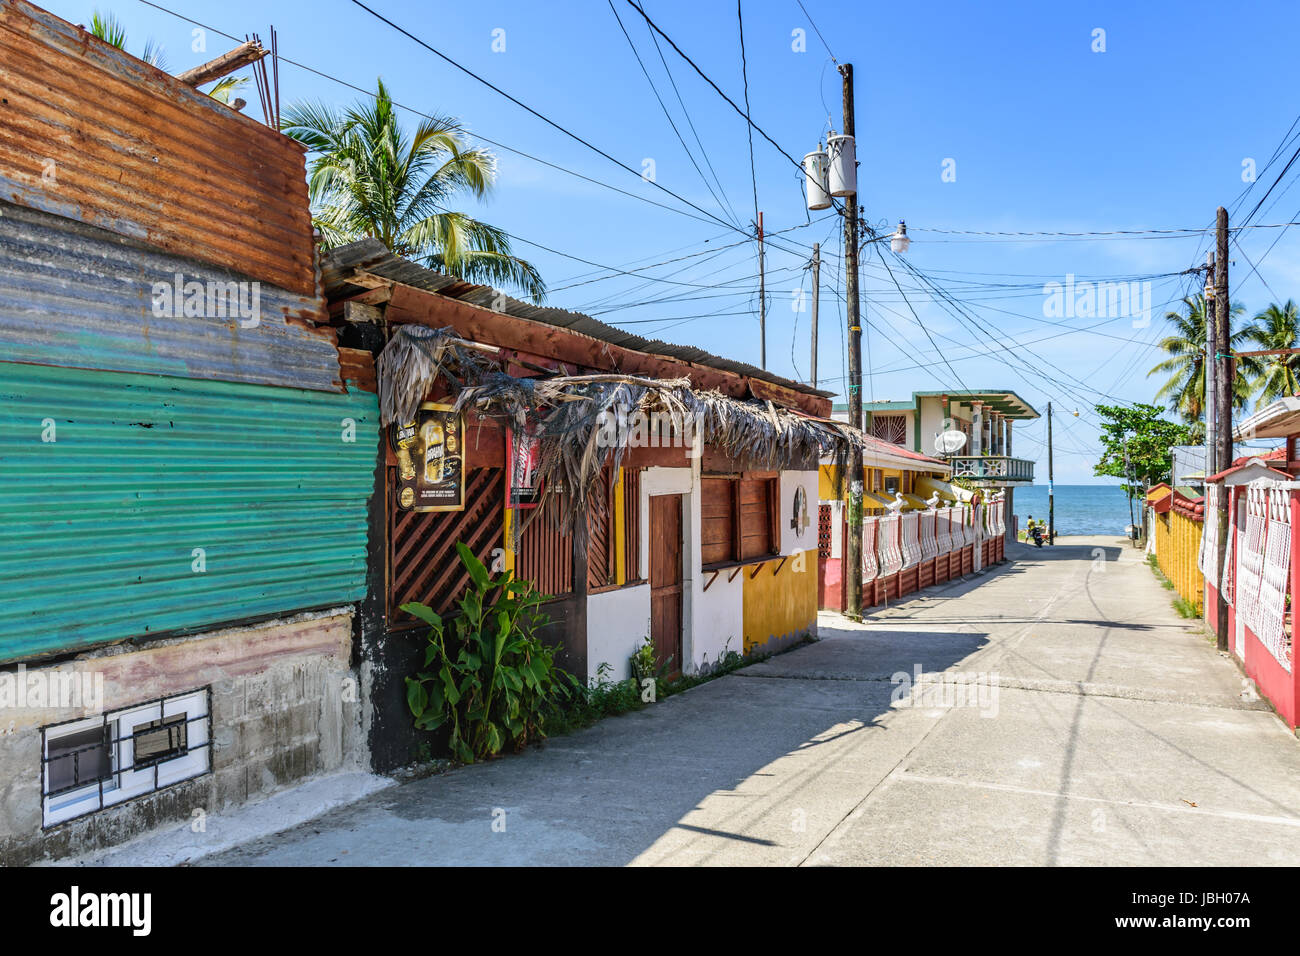 Livingston, Guatemala - August 31, 2016: Street leads down to water's edge in early afternoon in Caribbean town - Stock Image